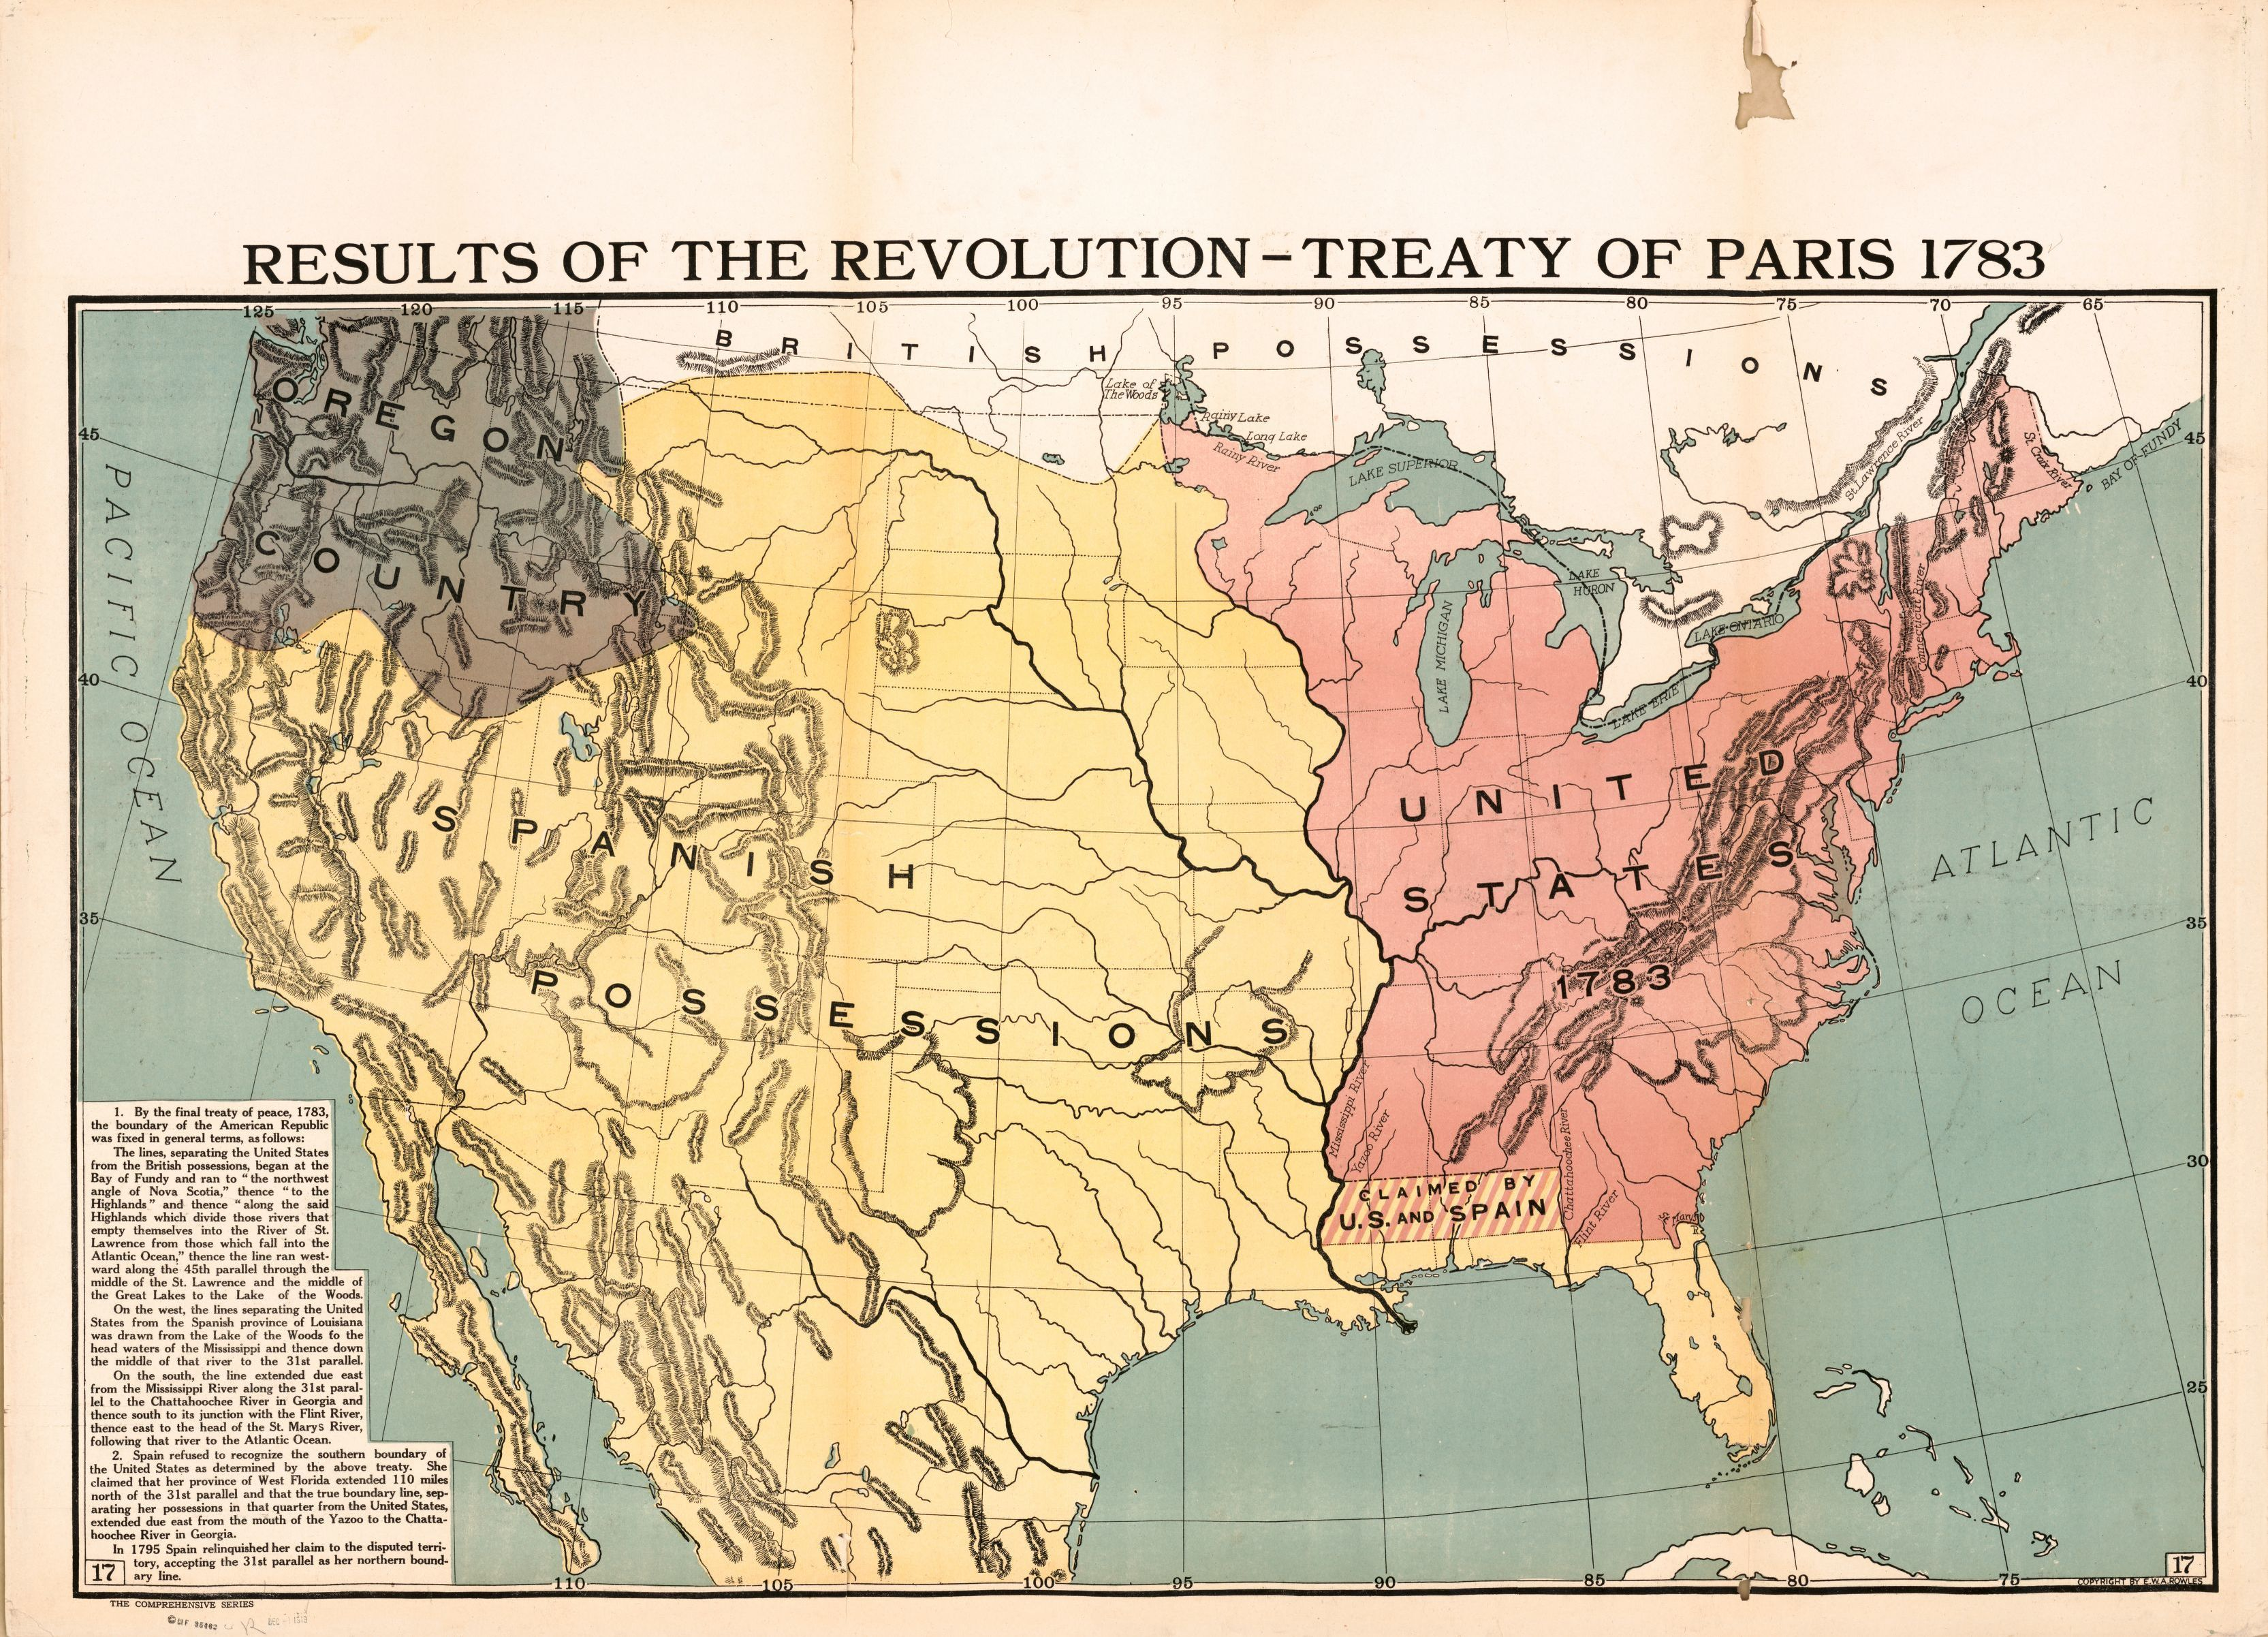 Results of the Revolution - Treaty of Paris 1783 | Library of Congress